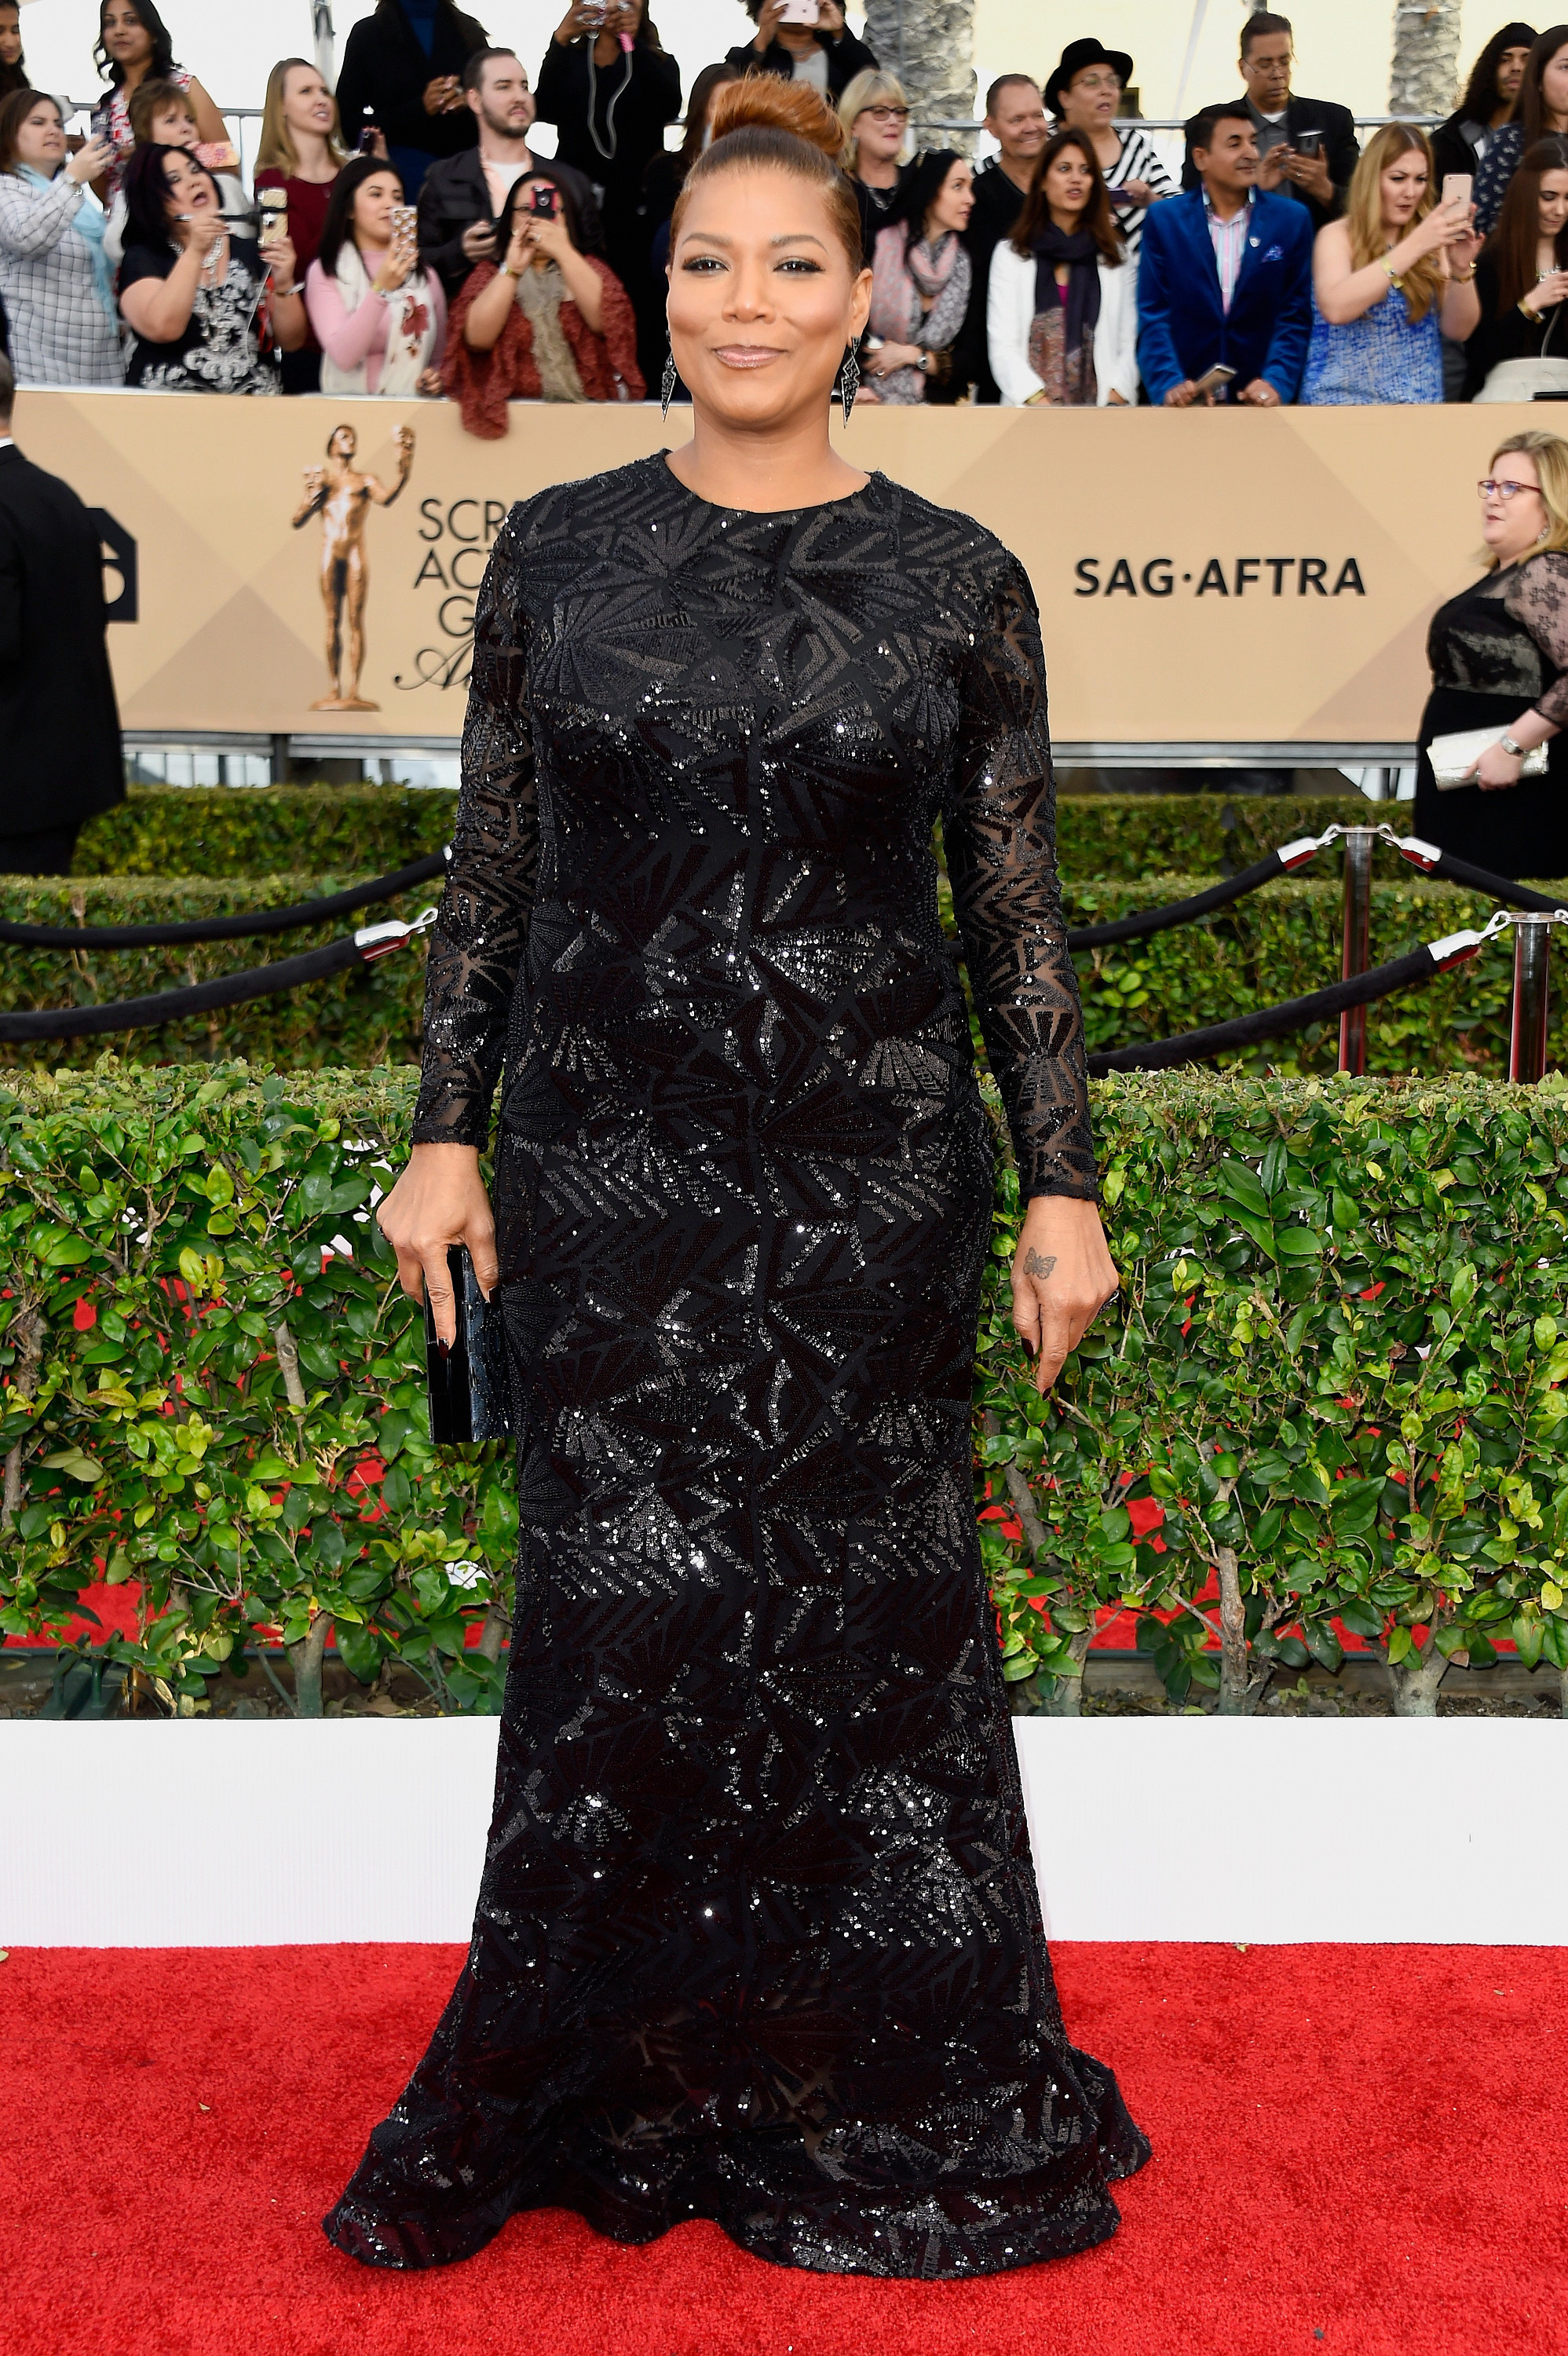 Queen Latifah - Best and Worst Dressed at the Peoples